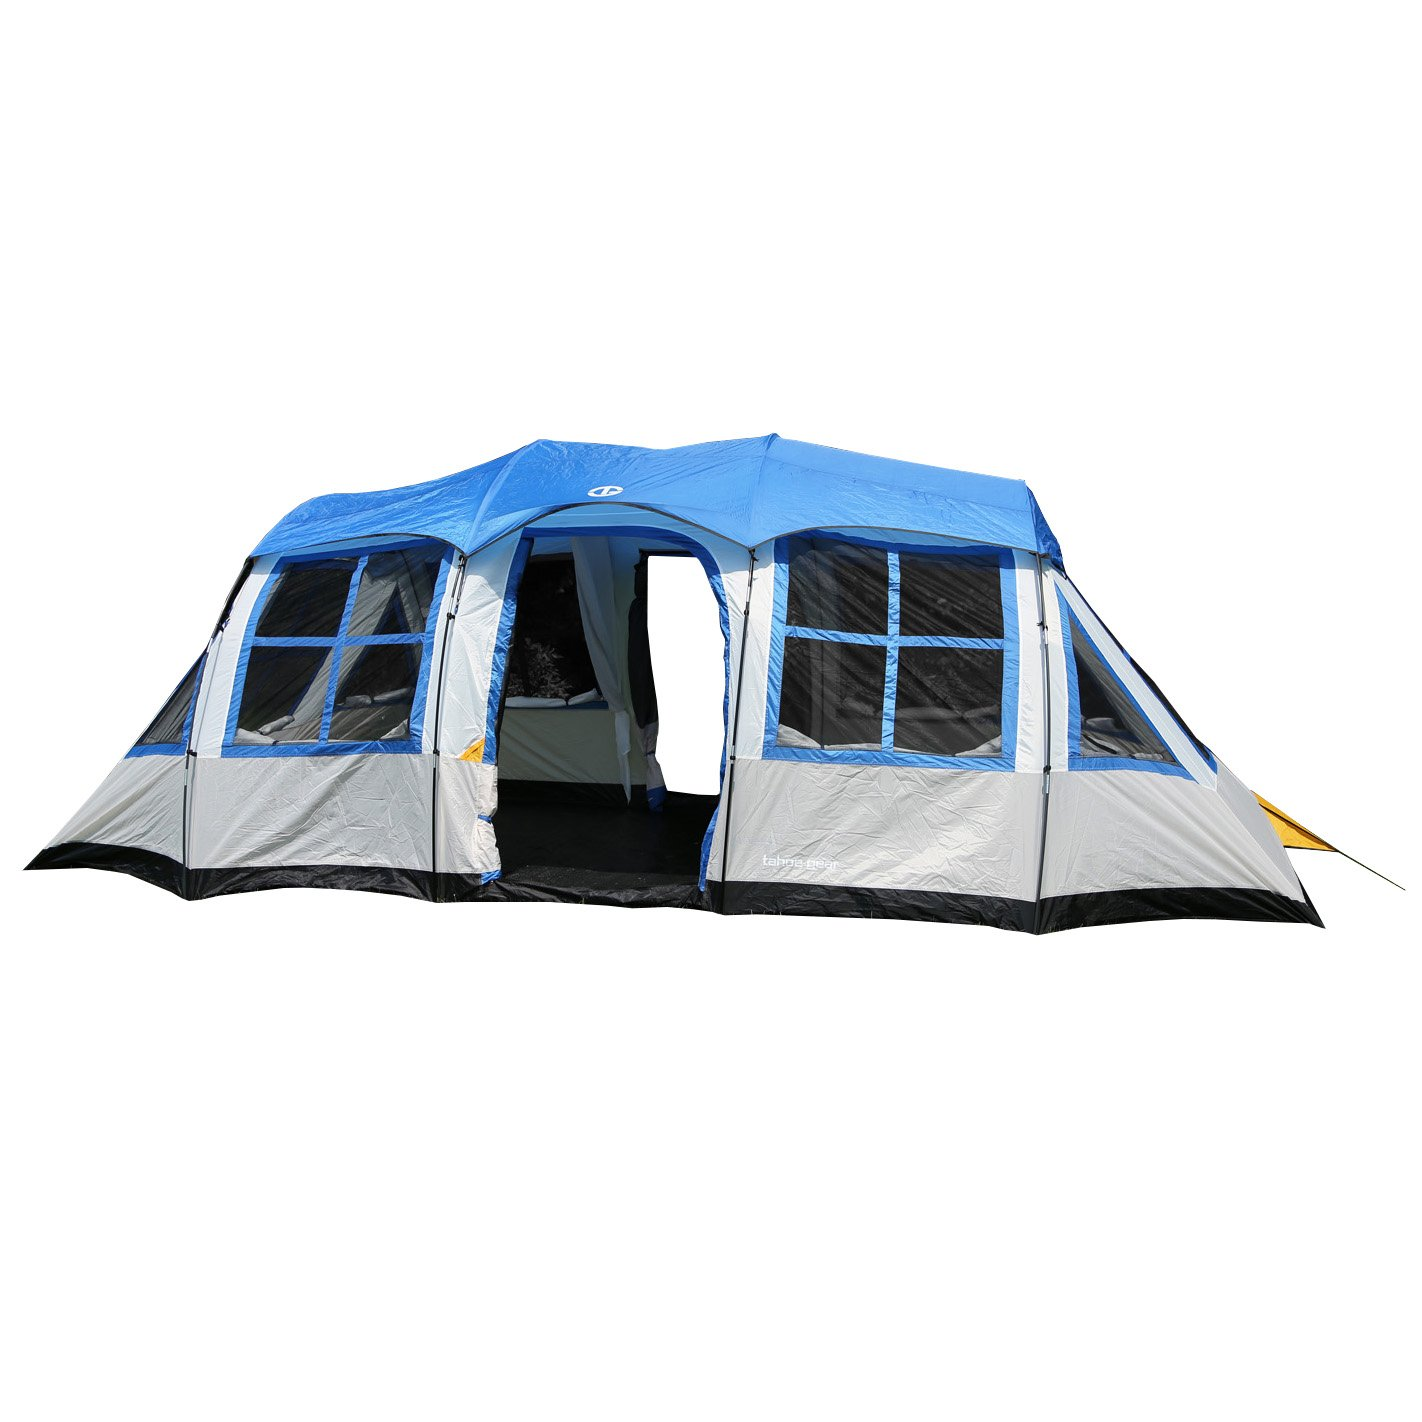 Tahoe Gear Prescott 12 Person 3-Season Family Cabin Tent  sc 1 st  Amazon.com : ozark trail 4 season tent - memphite.com